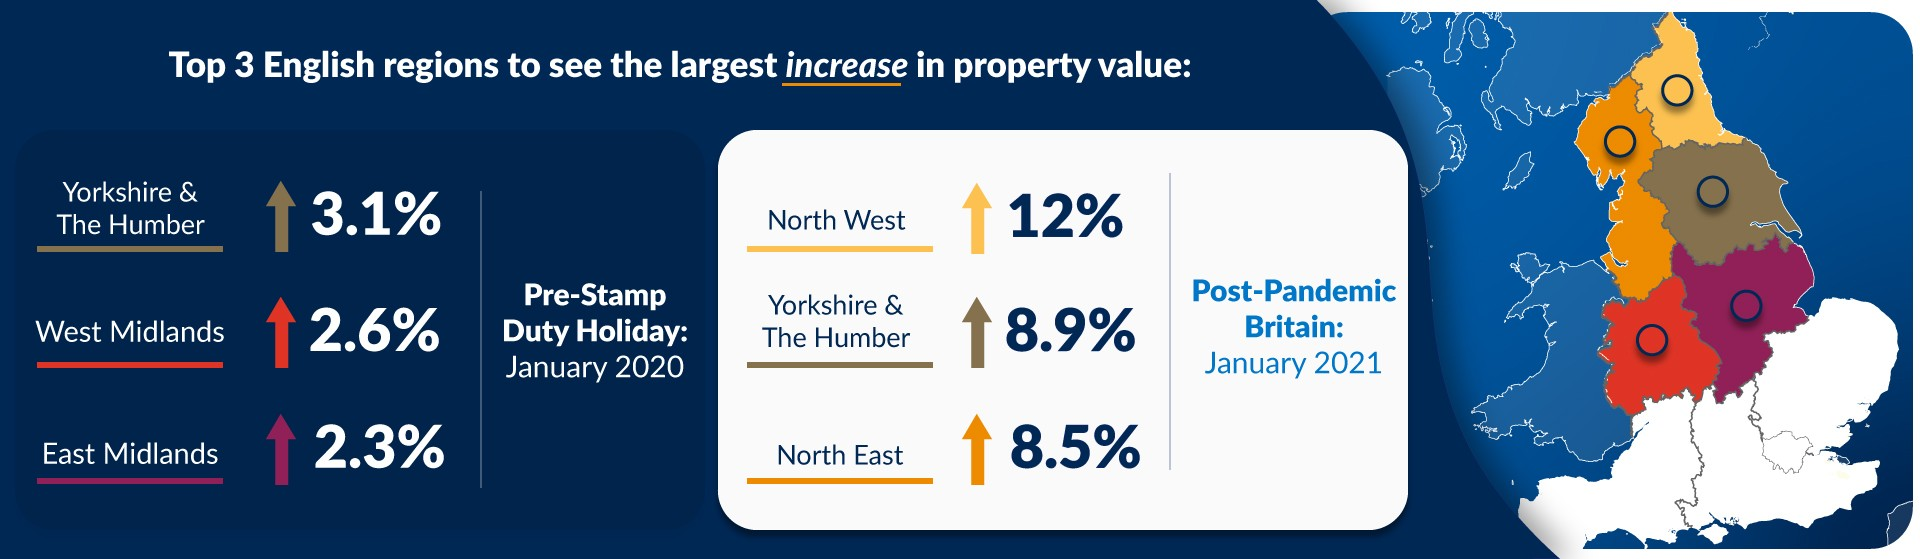 Office of National Statistics House Price Index January 2021 and 2020